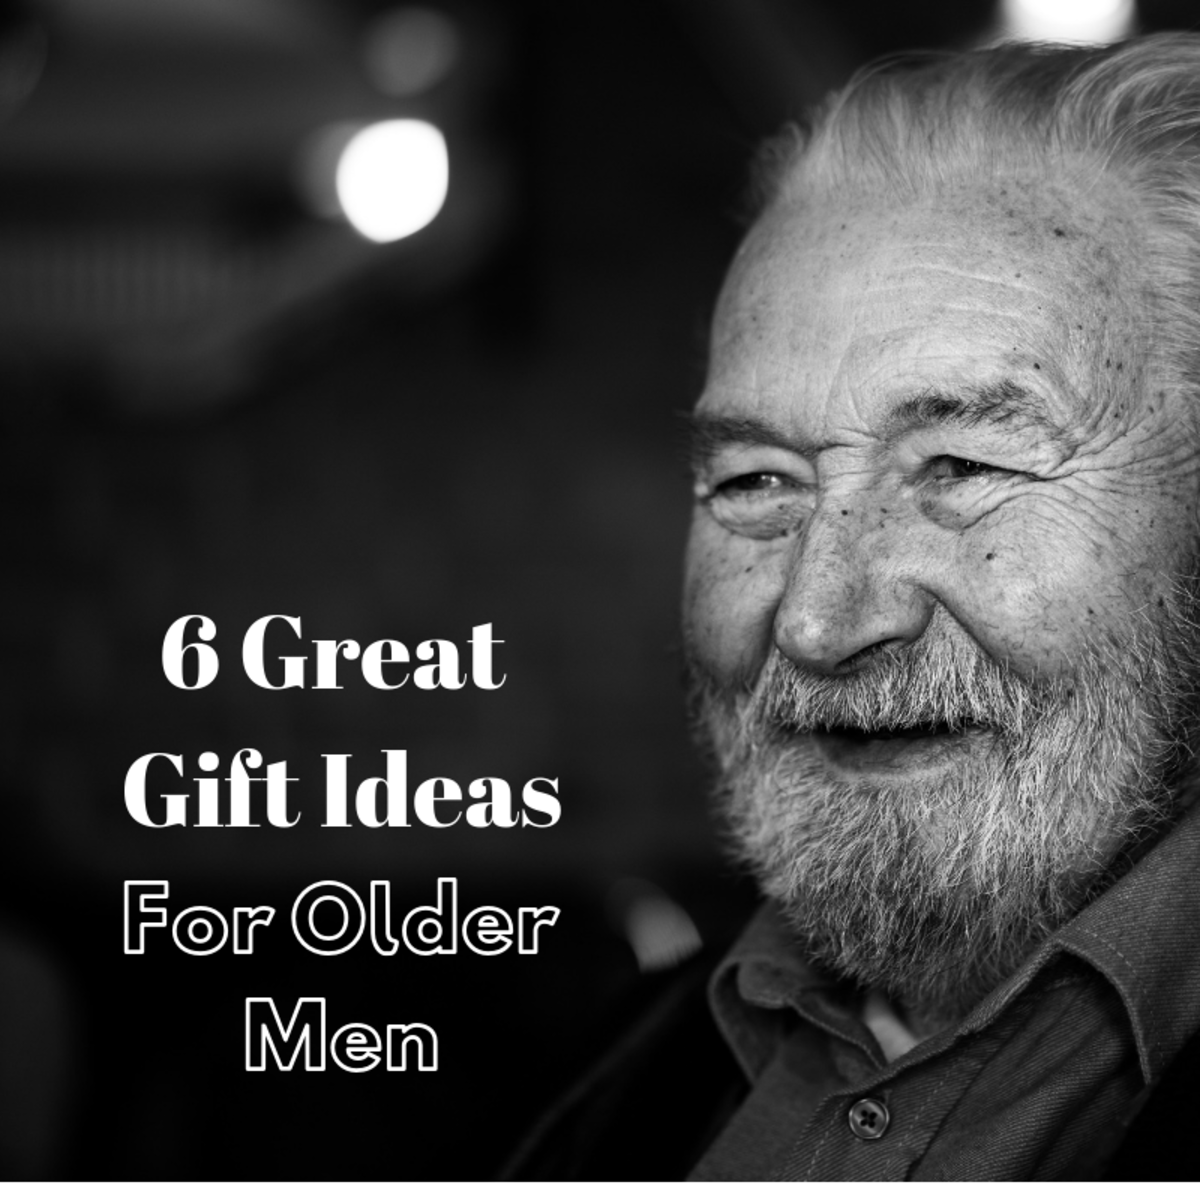 Older men can be hard to shop for. Here are a few gifts that I, an older man, would be delighted to receive.